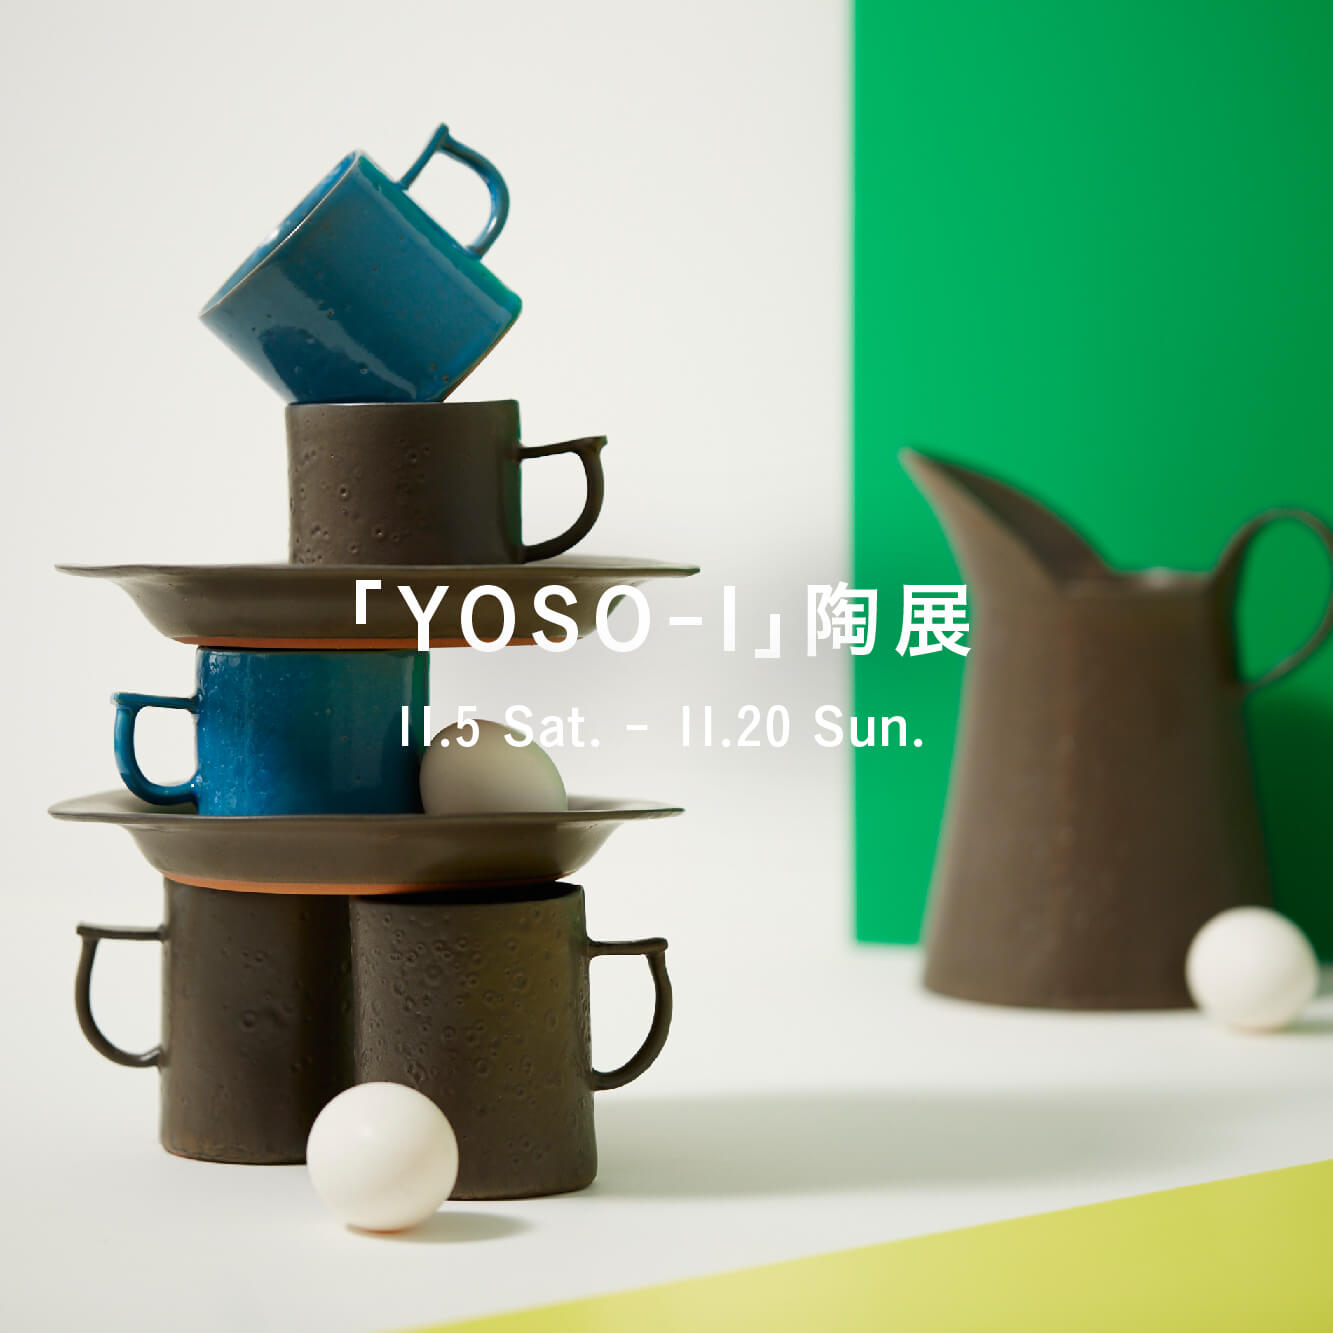 「YOSO-I」(yo・so・oi)陶展開催